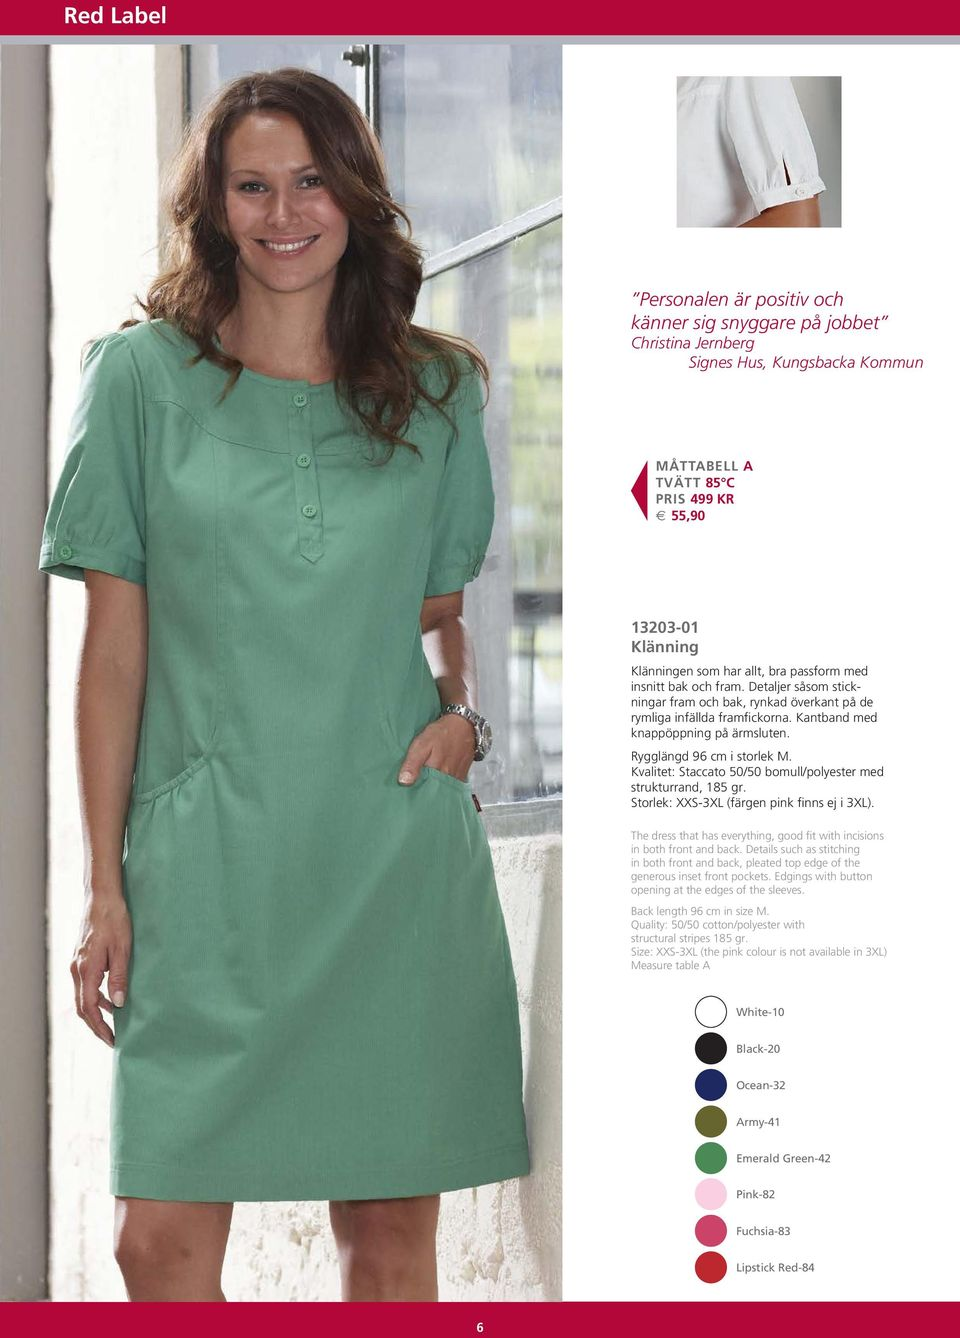 Kvalitet: Staccato 50/50 bomull/poly ester med strukturrand, 185 gr. Storlek: XXS-3XL (färgen pink finns ej i 3XL). The dress that has everything, good fit with incisions in both front and back.